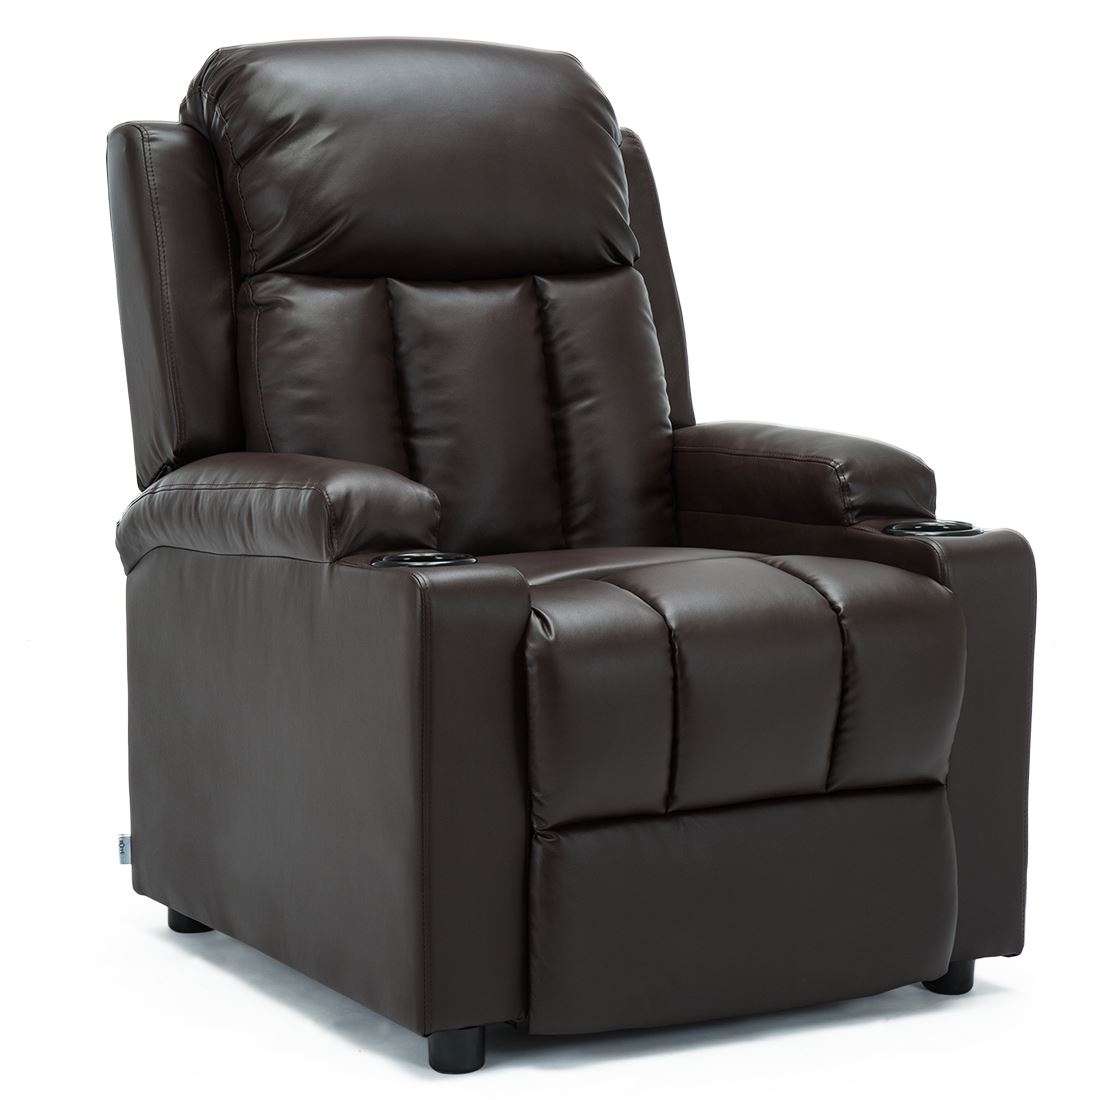 STUDIO-LEATHER-RECLINER-w-DRINK-HOLDERS-ARMCHAIR-SOFA-CHAIR-CINEMA-GAMING thumbnail 13